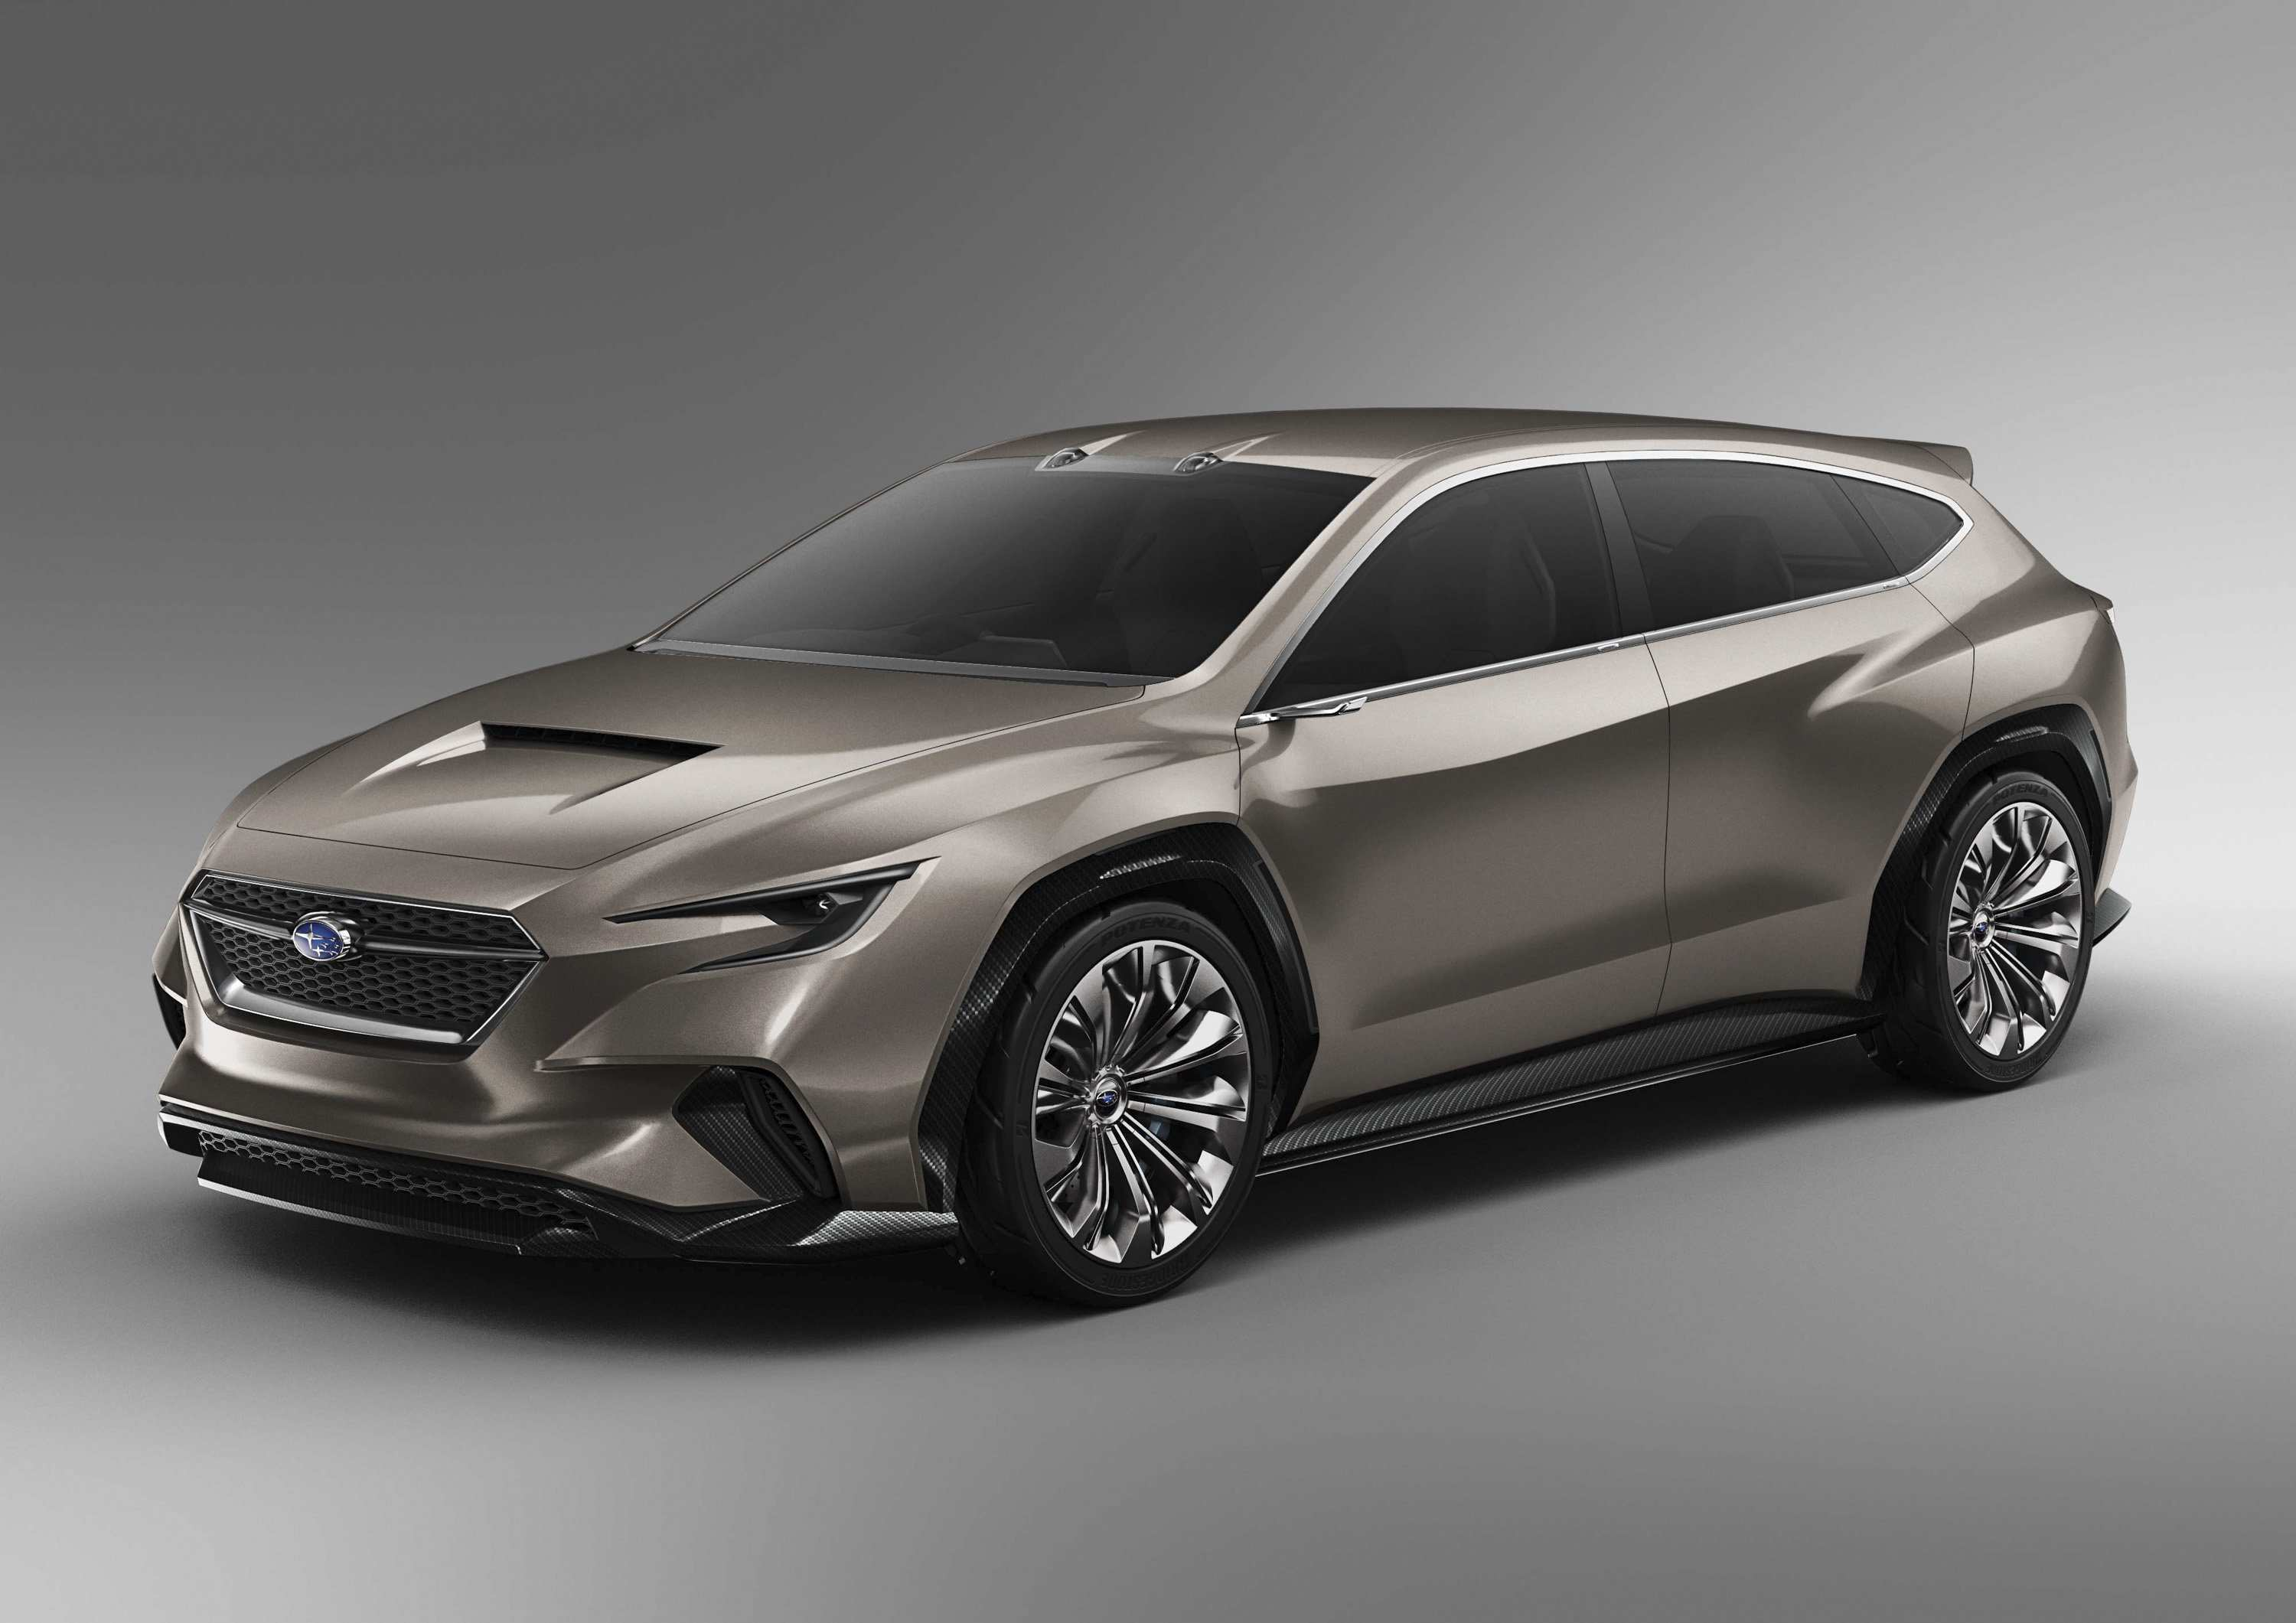 41 Concept of Subaru Outback 2020 Japan First Drive for Subaru Outback 2020 Japan